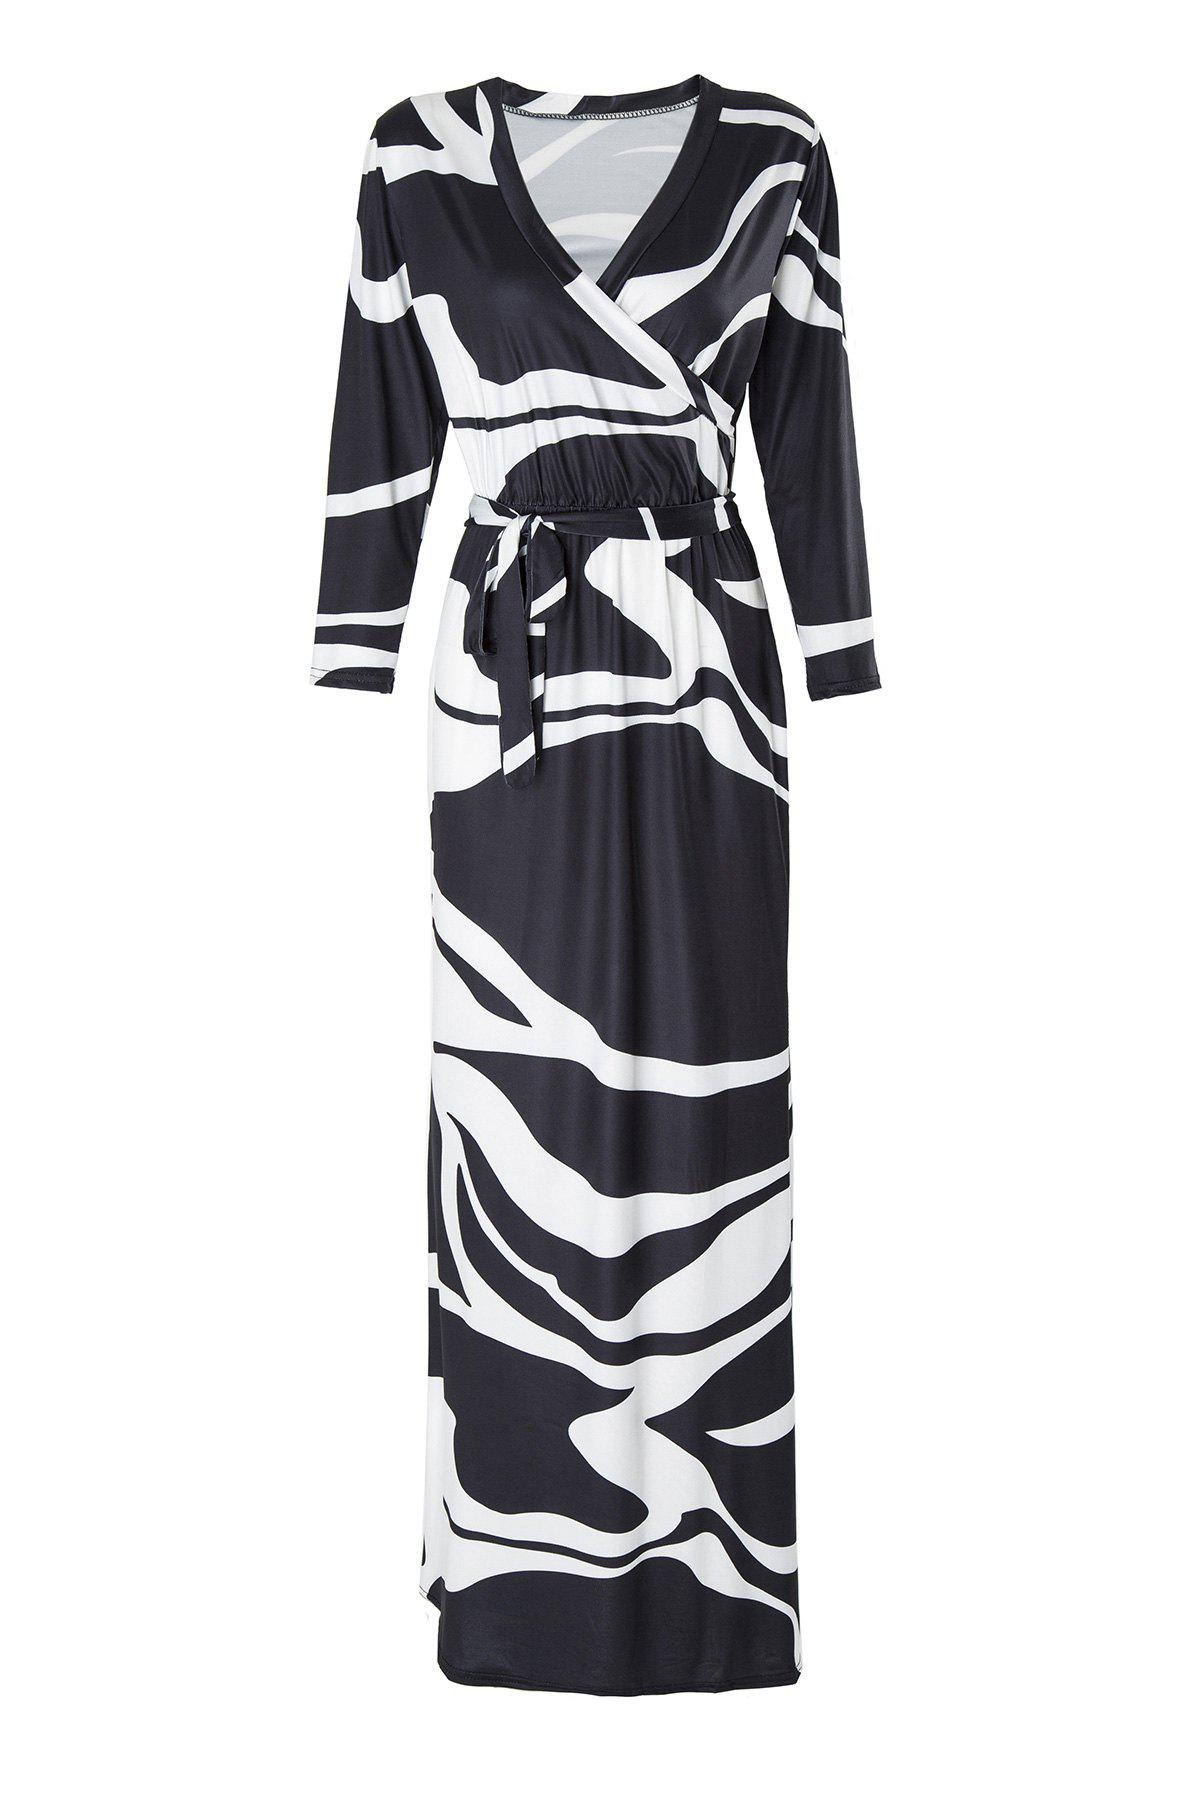 Stylish Plunging Neck 3/4 Sleeve Black and White Women's Maxi Dress - WHITE/BLACK S